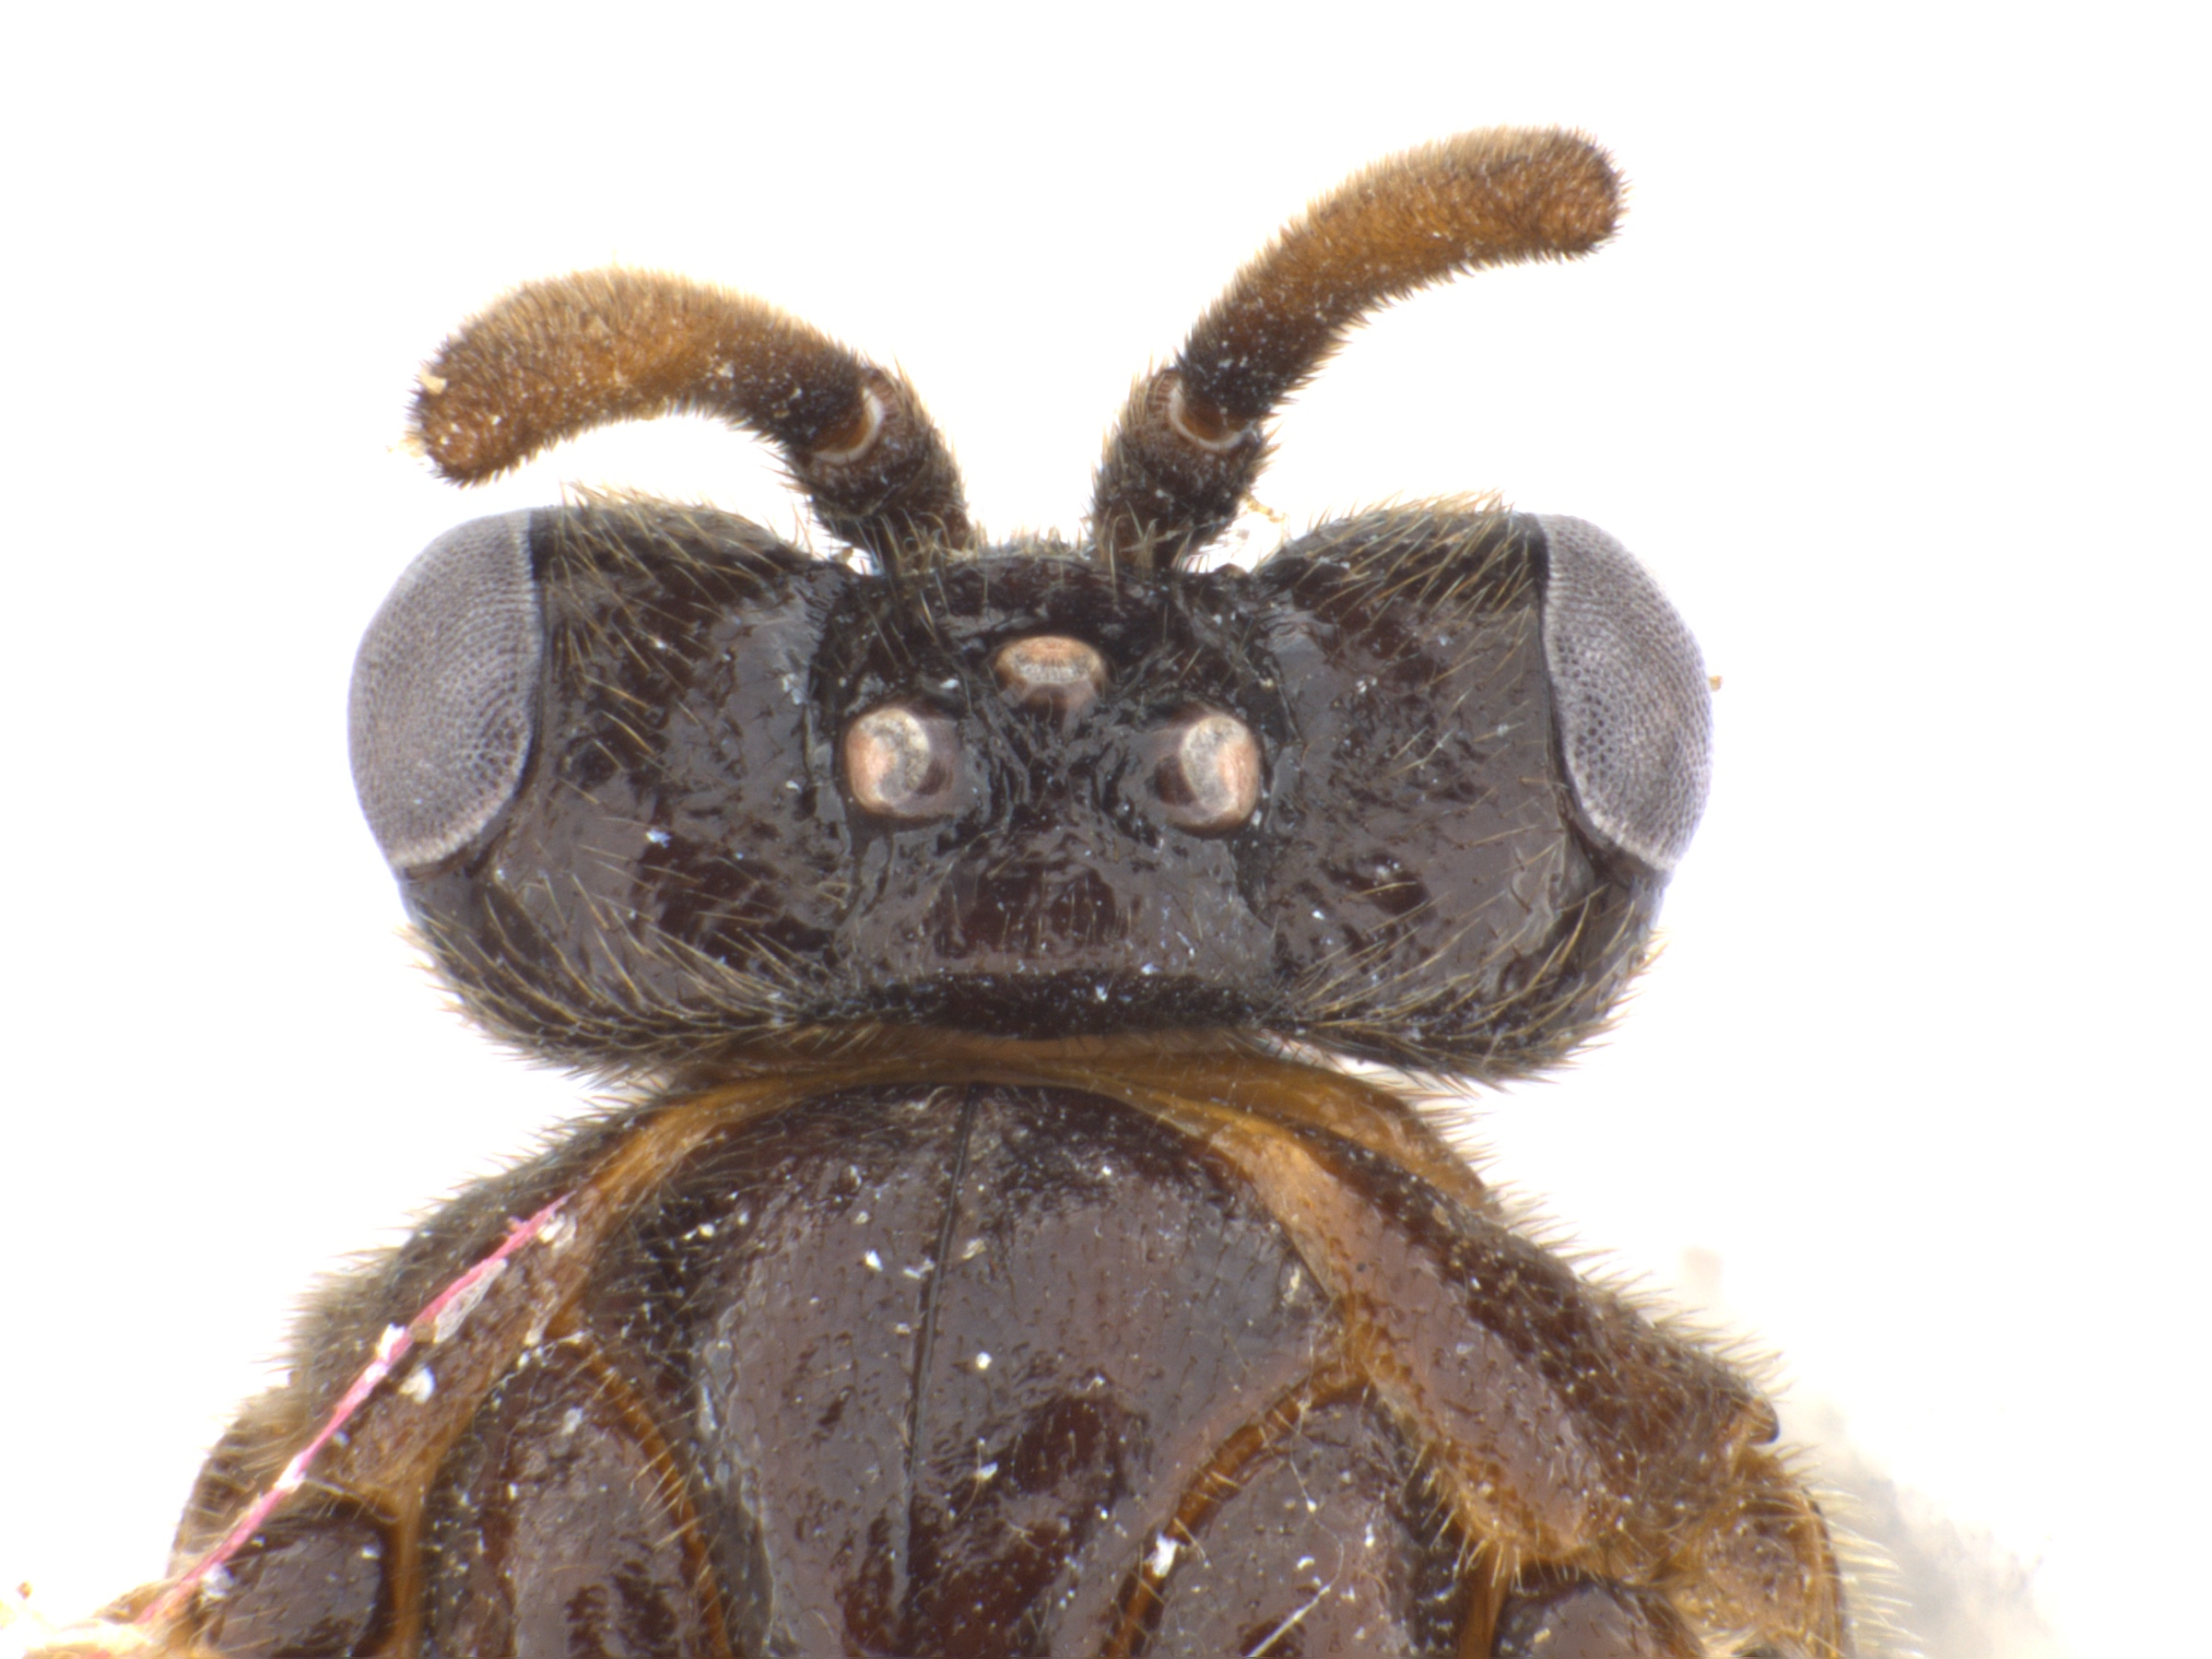 <em>Aprosthema</em> sp. female dorsal view of head and partial thorax; photo by J. Orr, WSDA